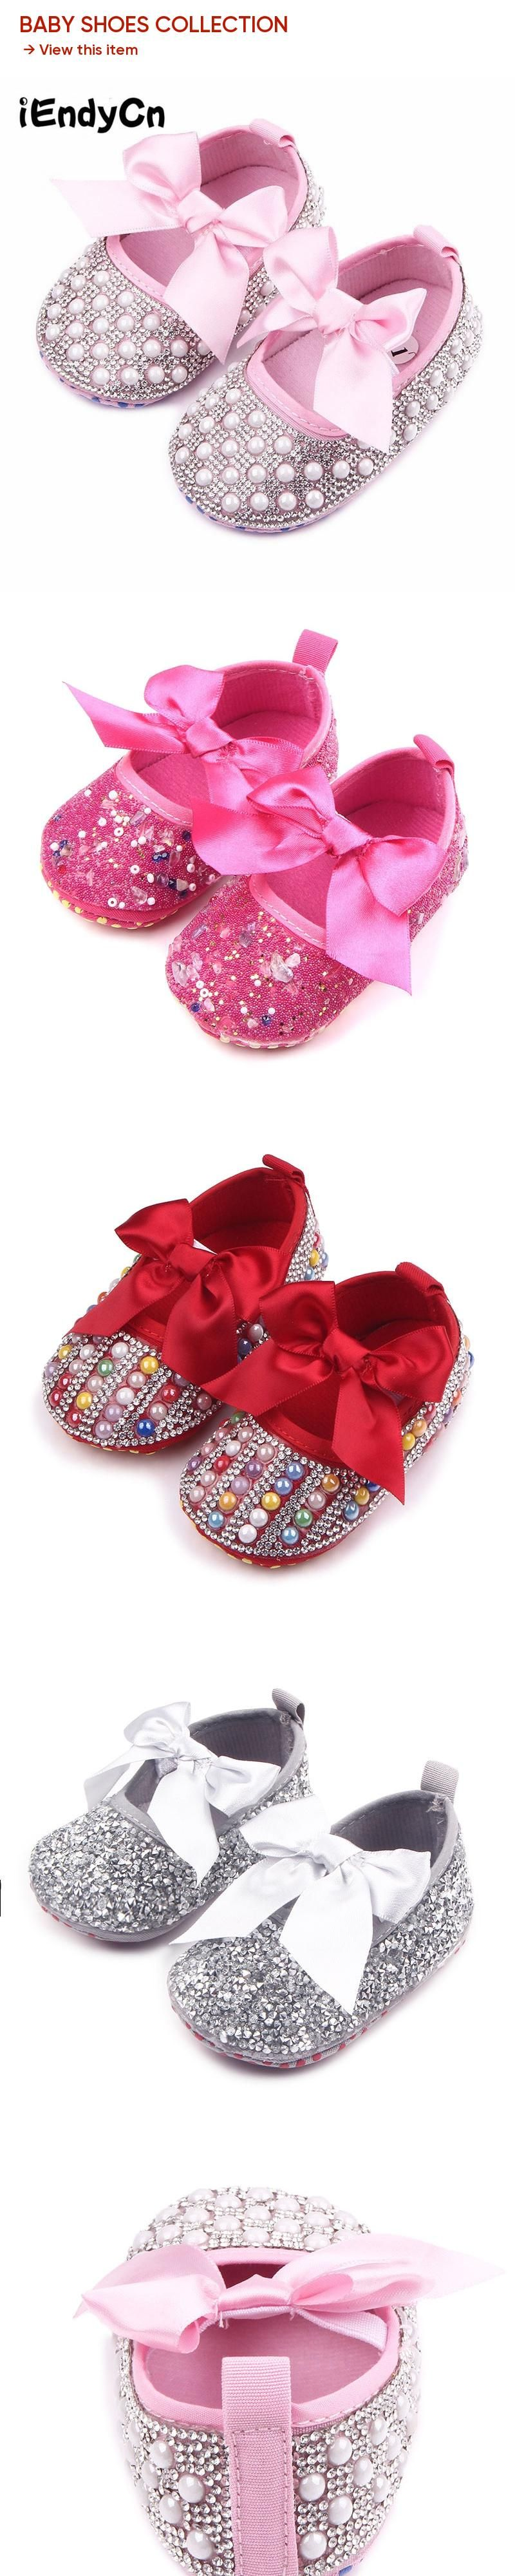 2017  New Bow Princess Shoes Baby Soft Bottom School Shoes 0-1 year old Female Spring and Autumn Baby Shoes YD206